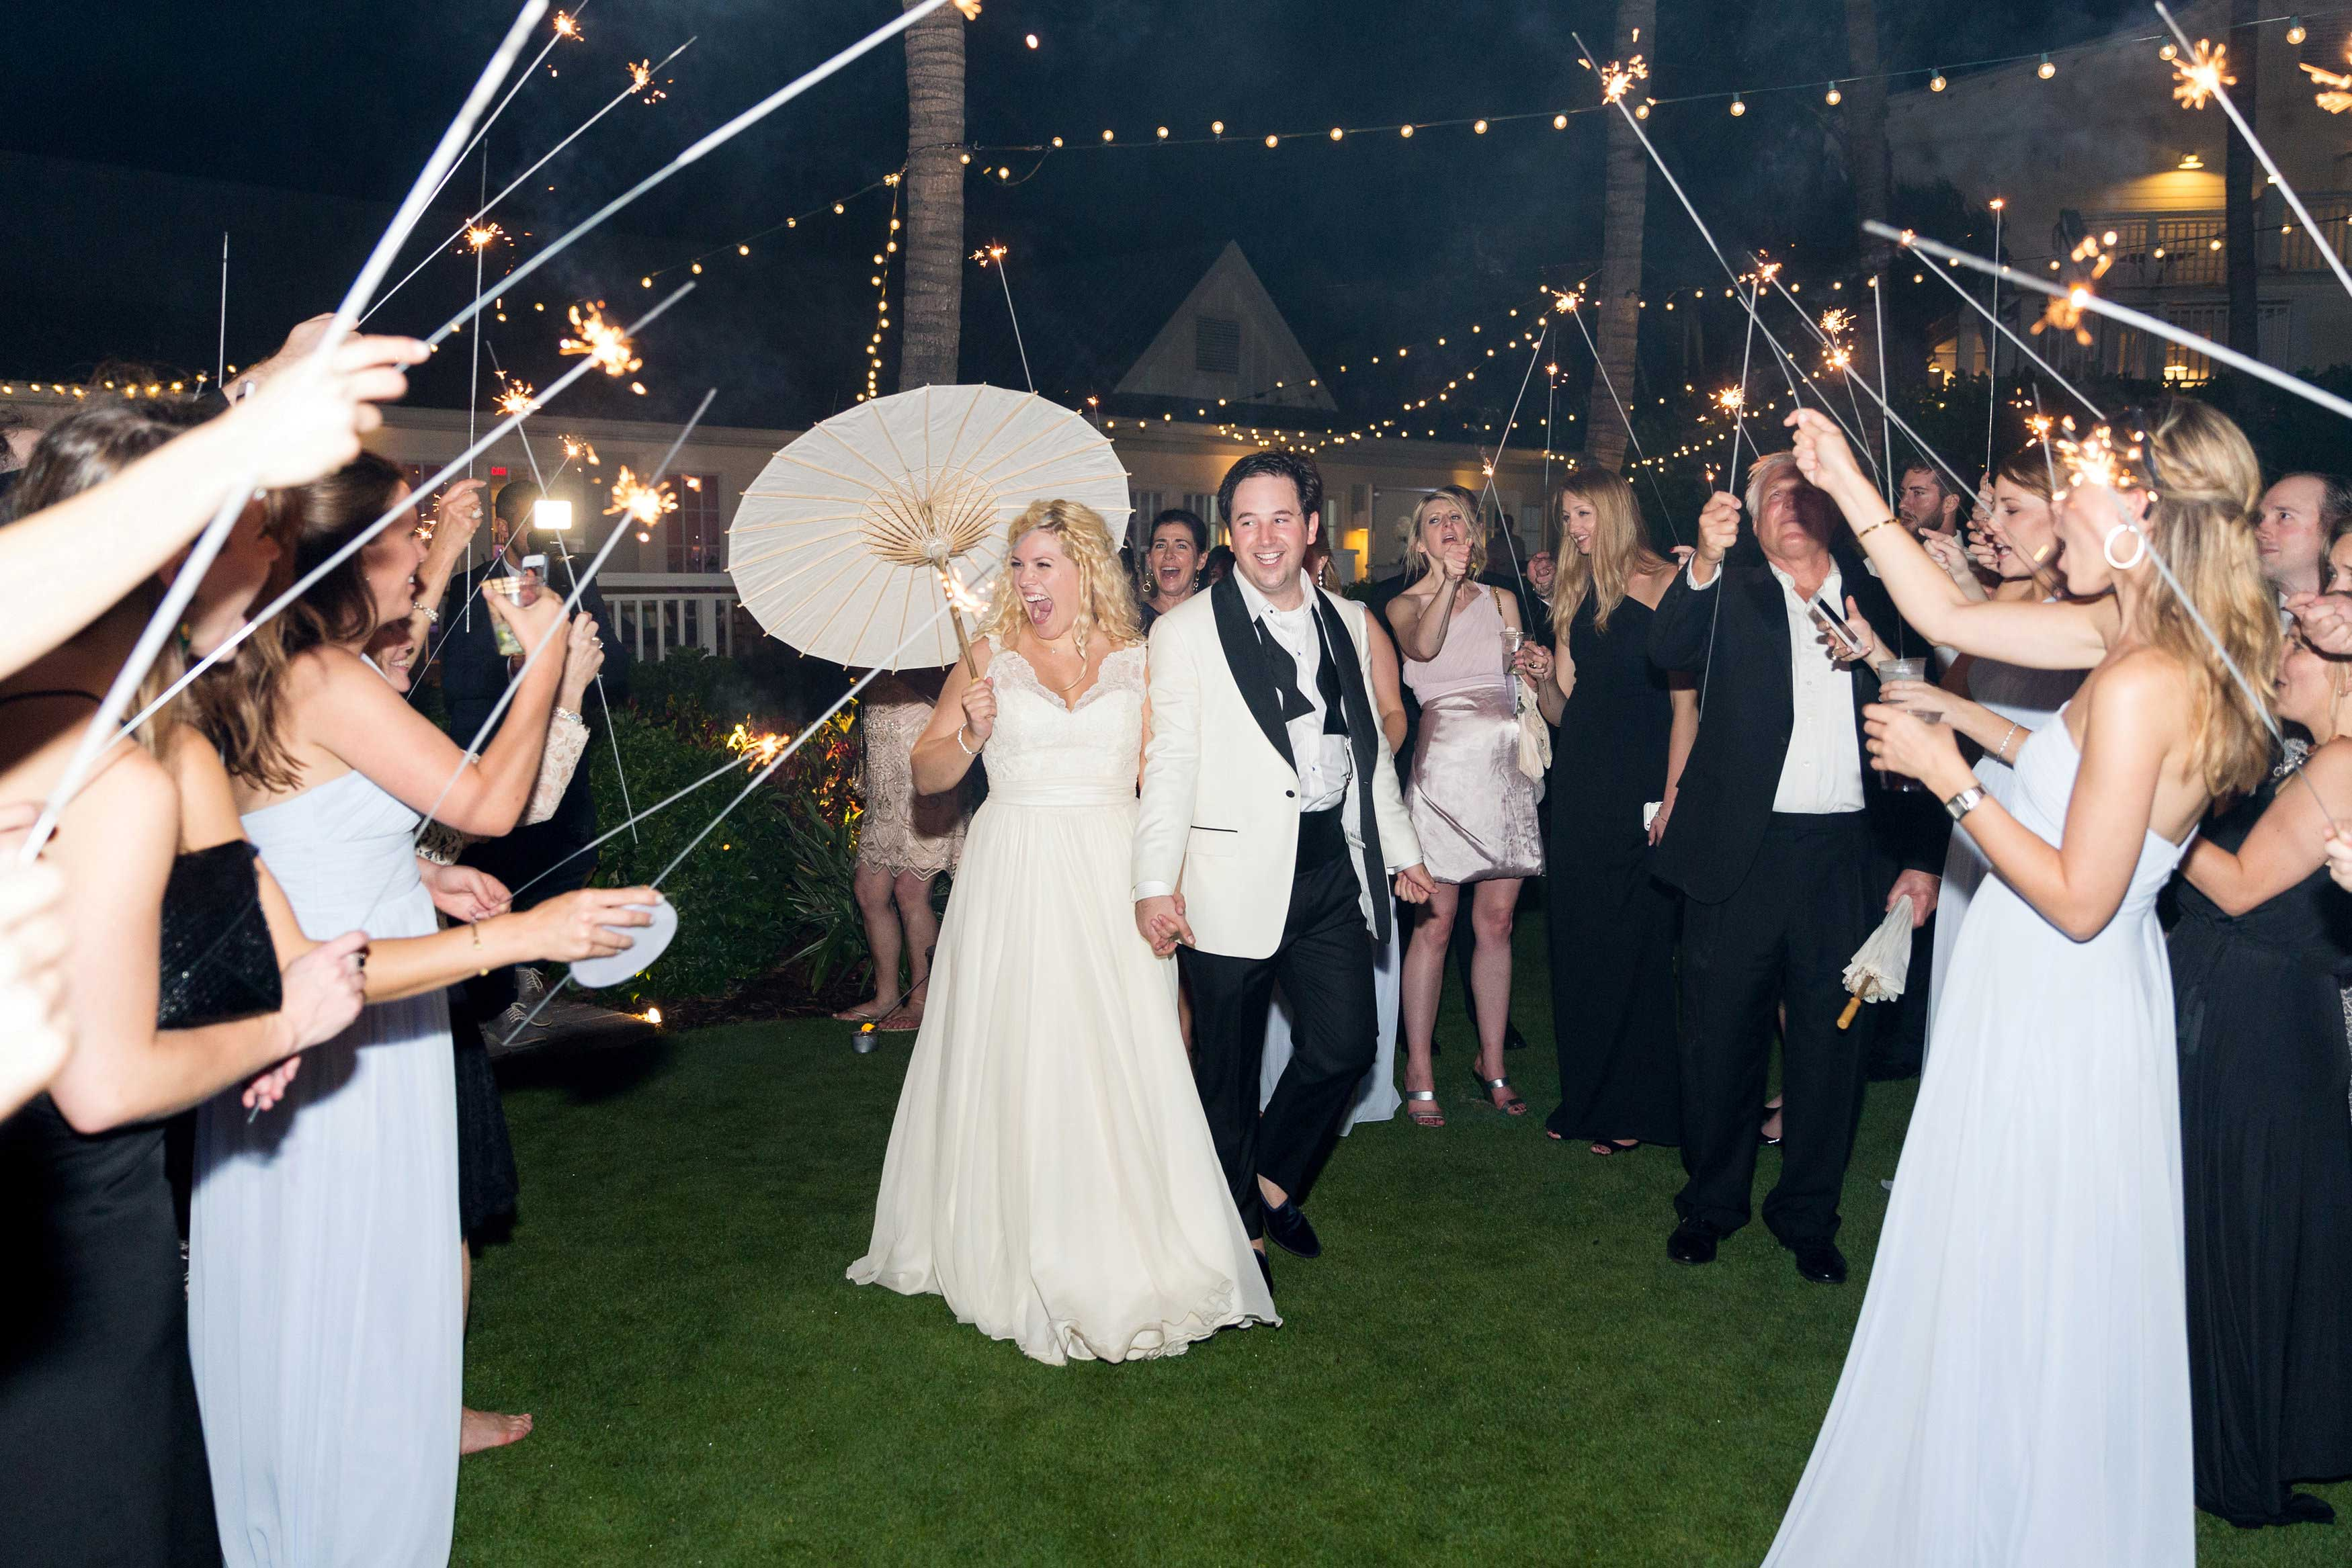 Bride and groom holding hands at outdoor night reception sparkler exit